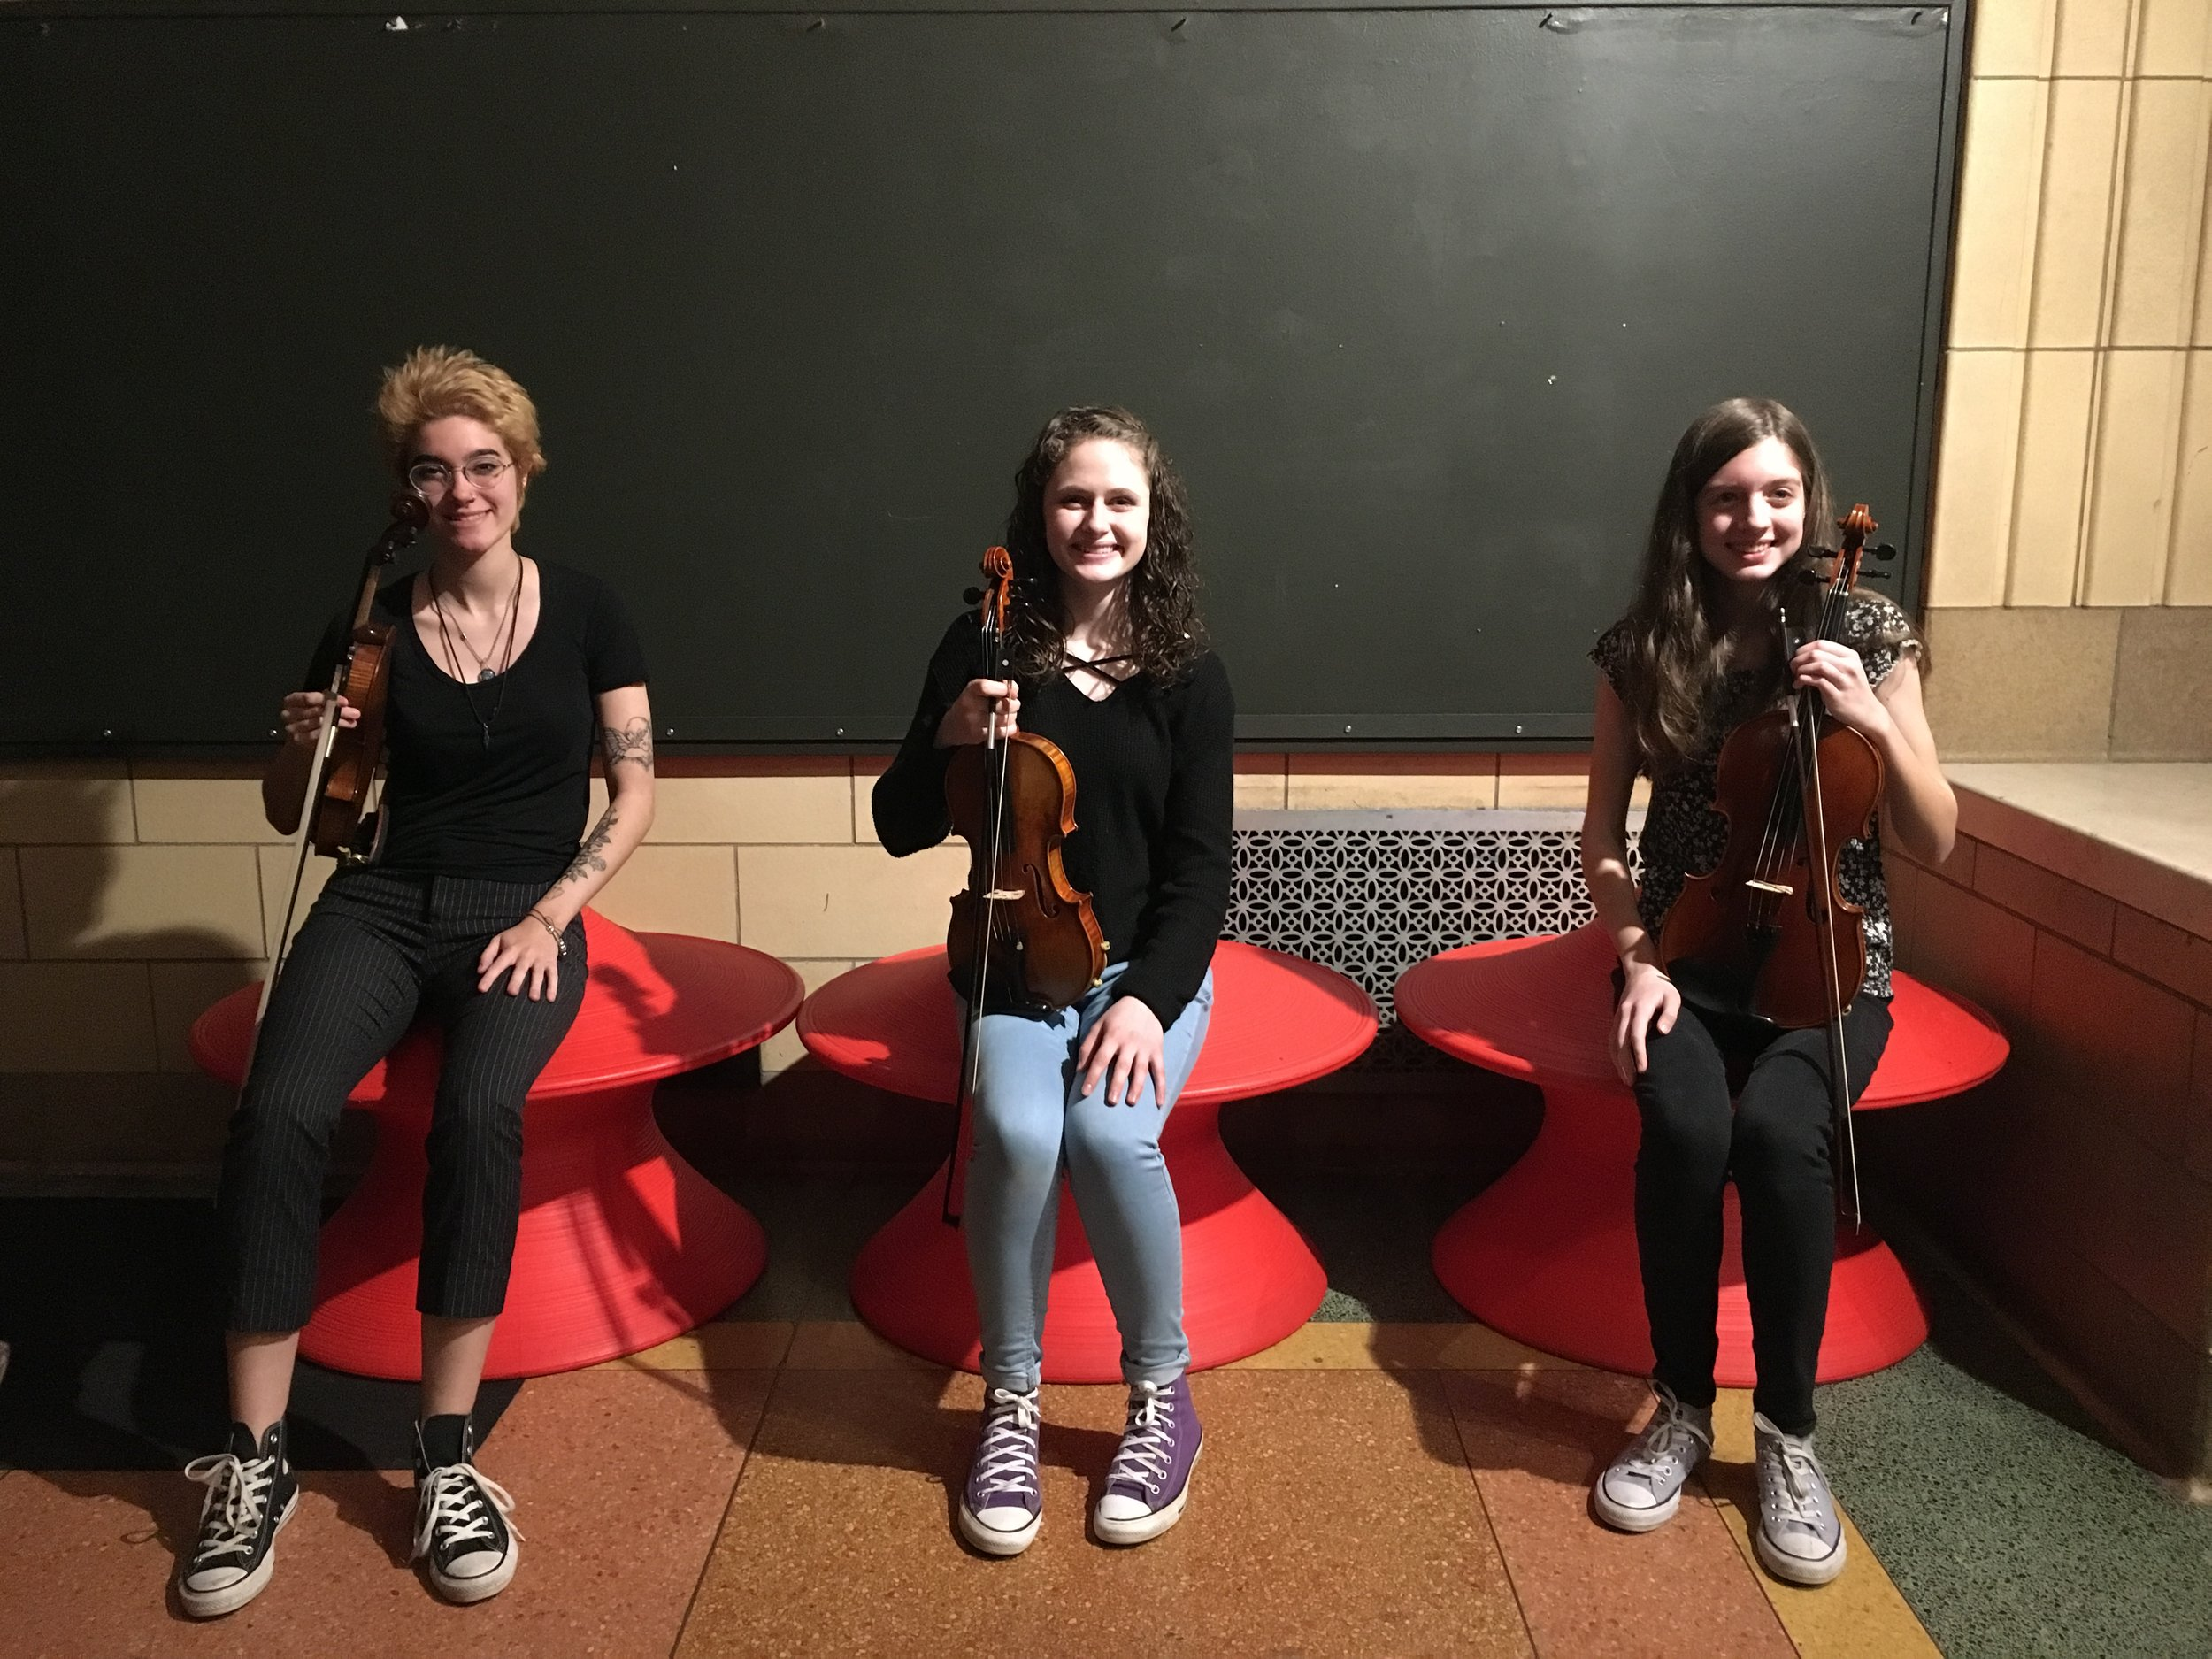 Taylor Trio at SLB Radio - Saturday, April 27, 2019The Taylor Trio performed Sousa, Gershwin, and more on the Saturday Light Brigade radio show at the Pittsburgh Children's Museum. Madi, Lydia, and Anna study chamber music with Kathleen Melucci, Principal Cello of the Pittsburgh Opera Orchestra.